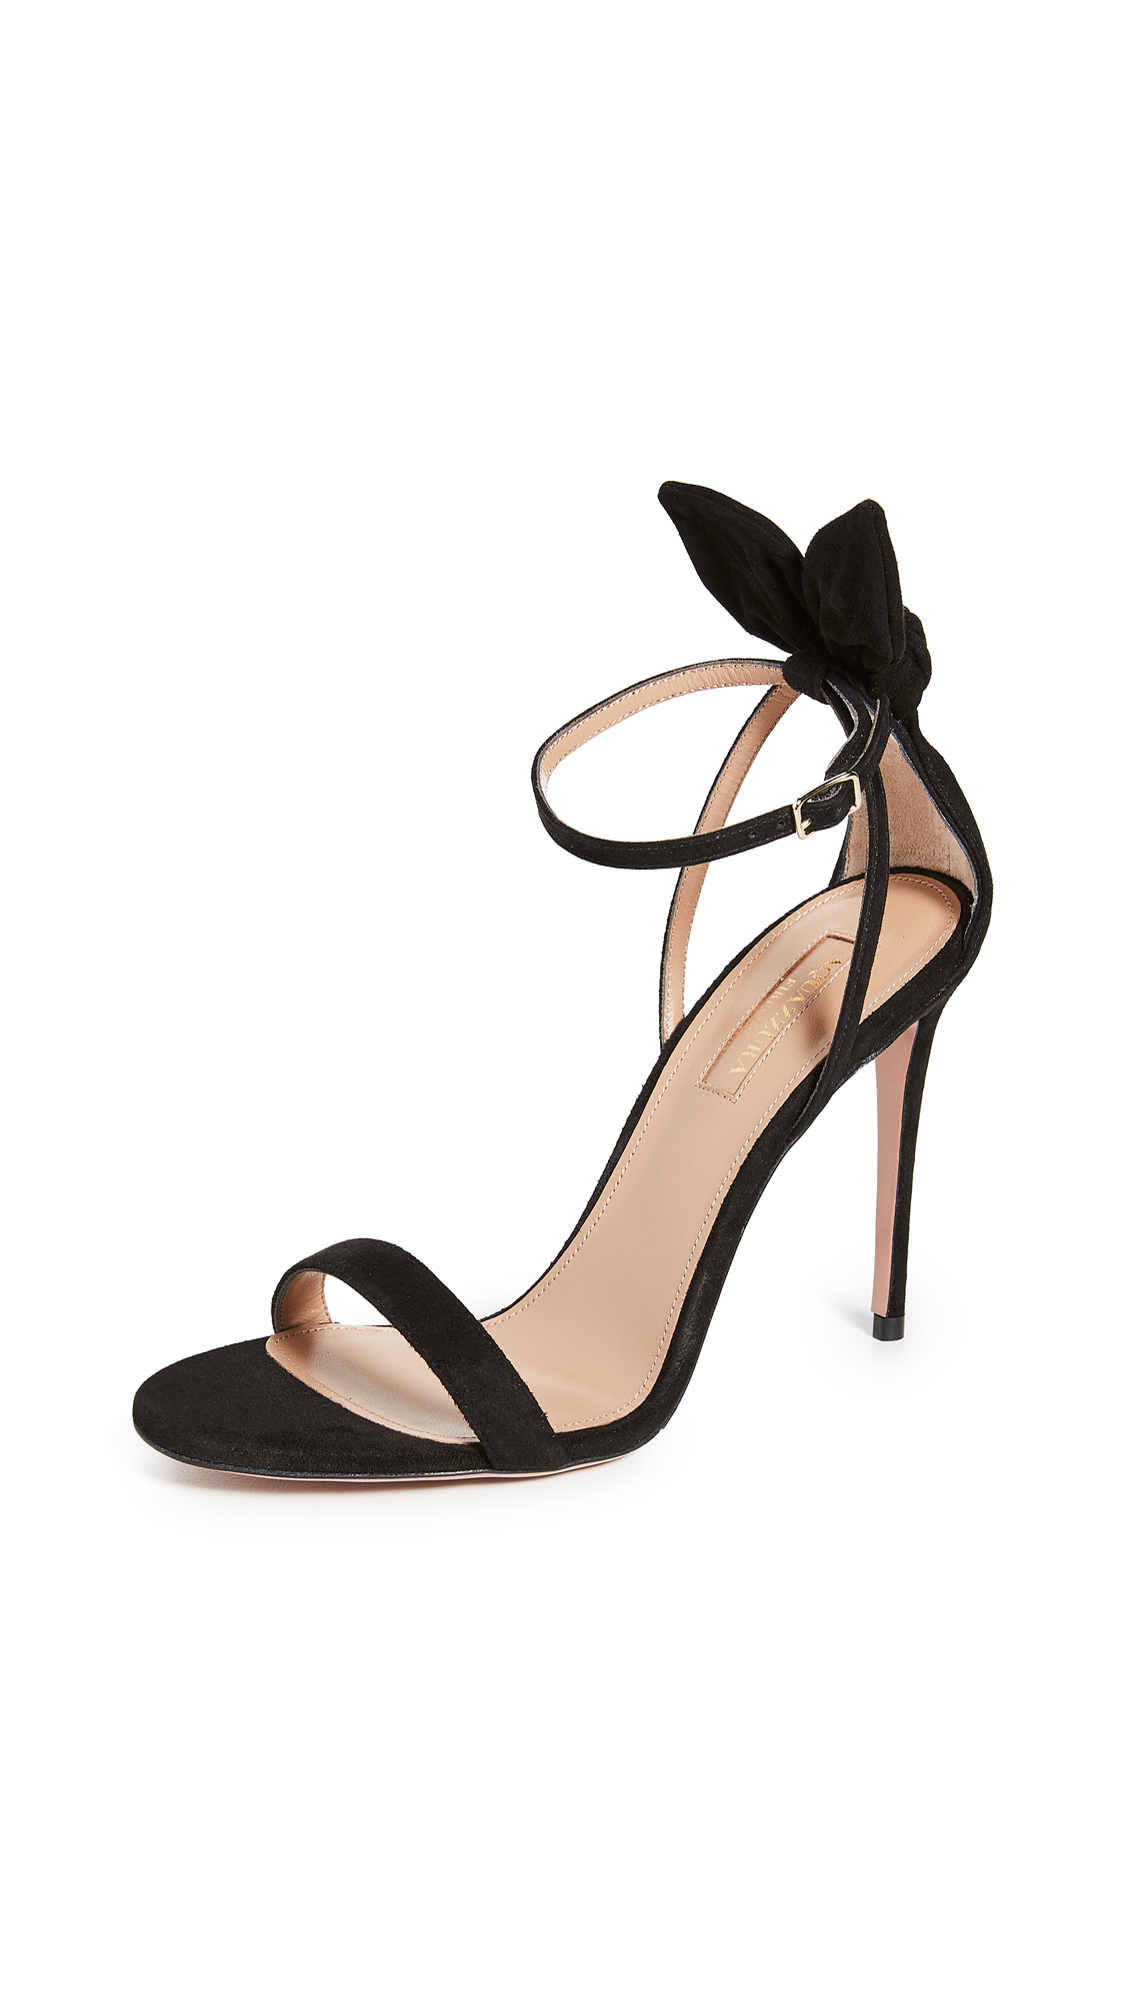 Buy Aquazzura Bow Tie Sandals 105mm online, shop Aquazzura